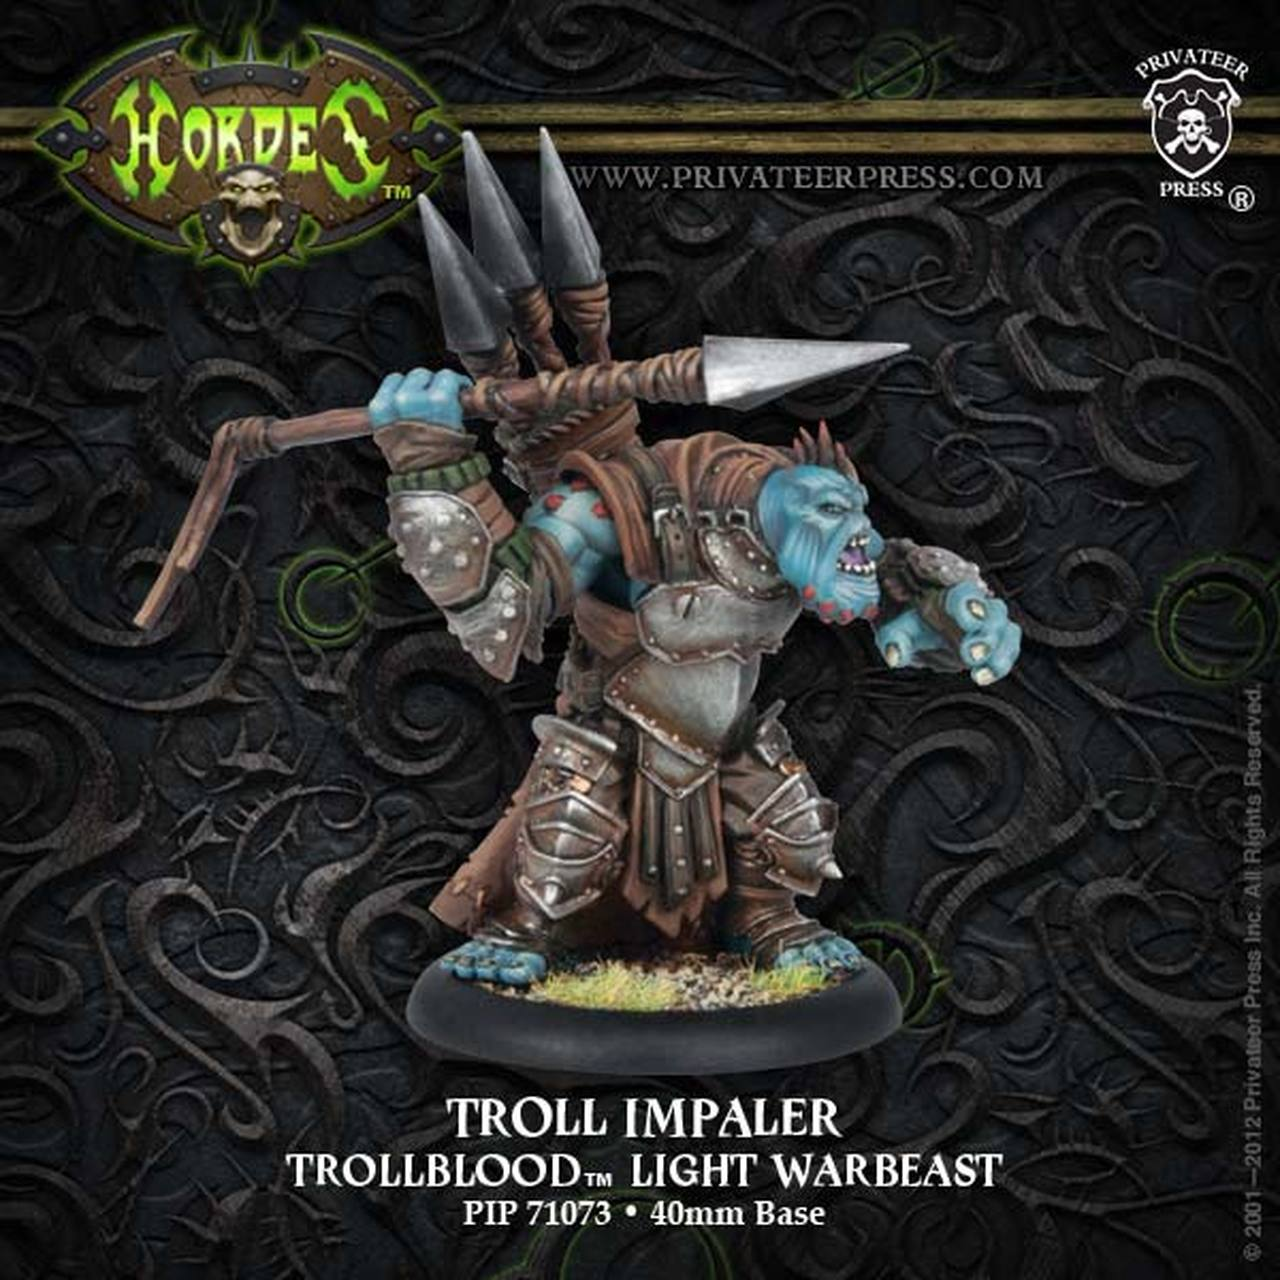 Trollblood - Troll Impaler, Light Warbeast | All About Games